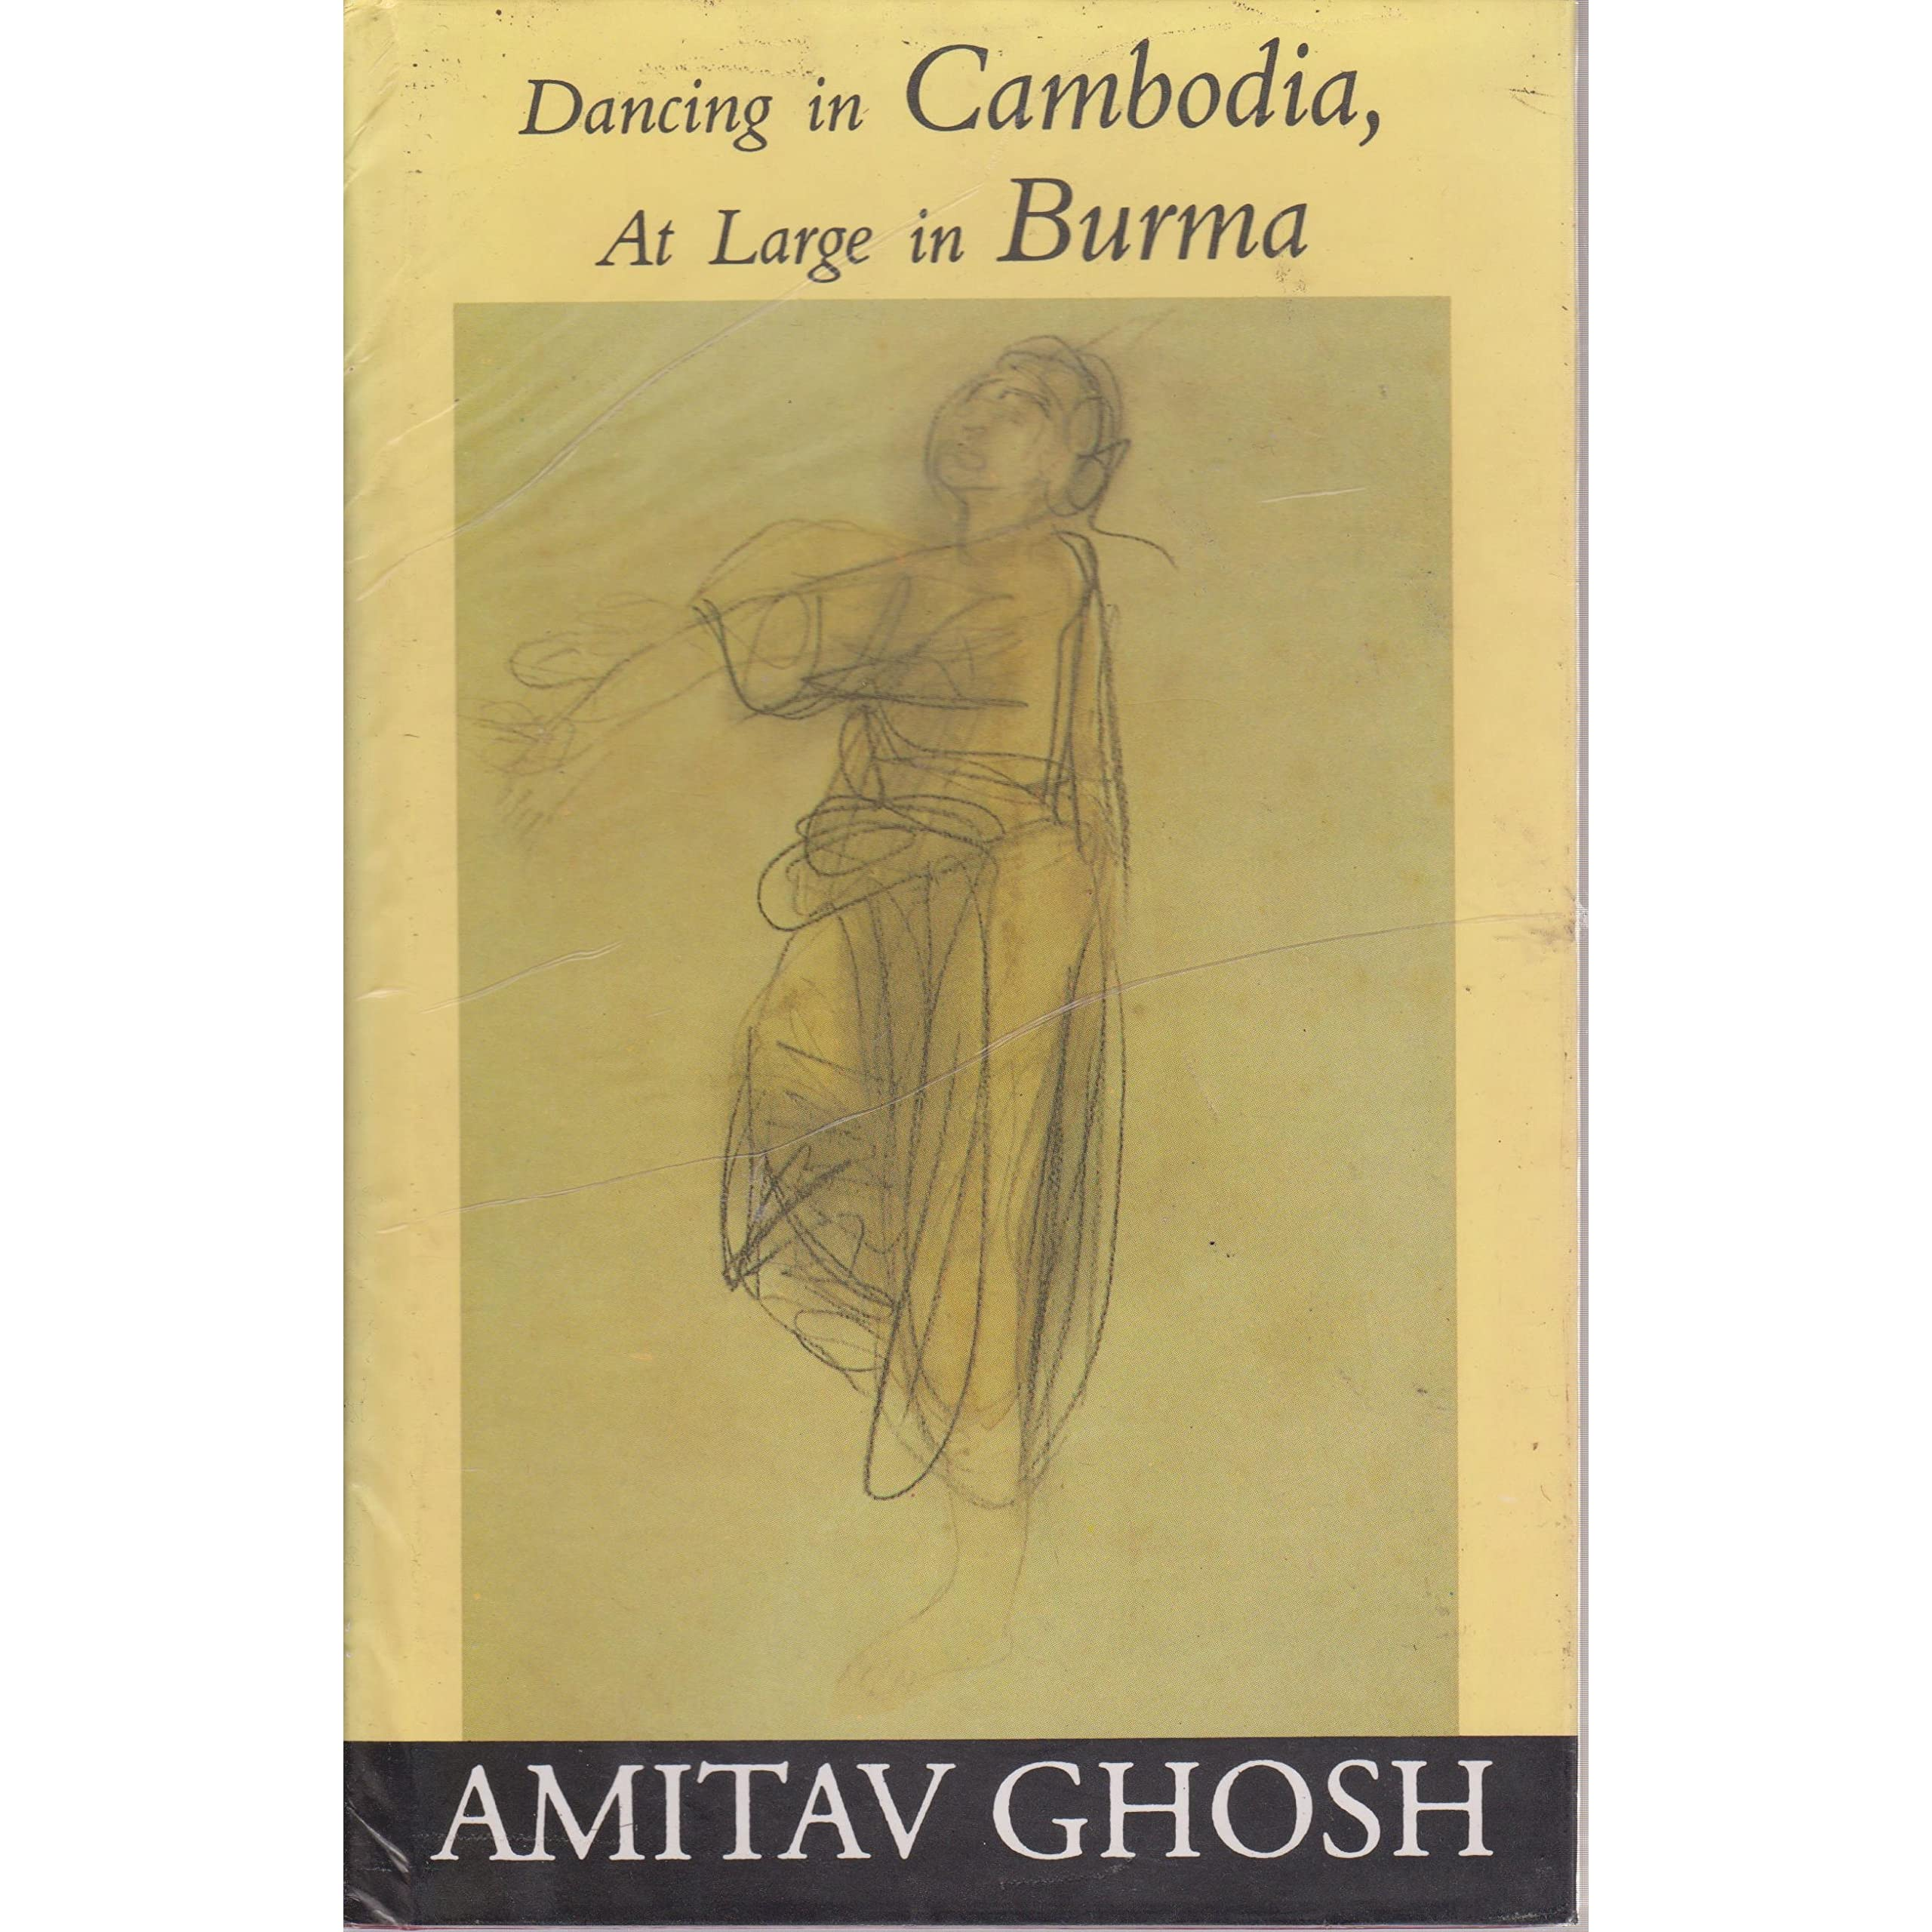 amitav ghosh essay The hungry tide essay topics amitav ghosh the hungry tide 53-page comprehensive study guide features 66 chapter summaries and 5 sections of expert analysis.